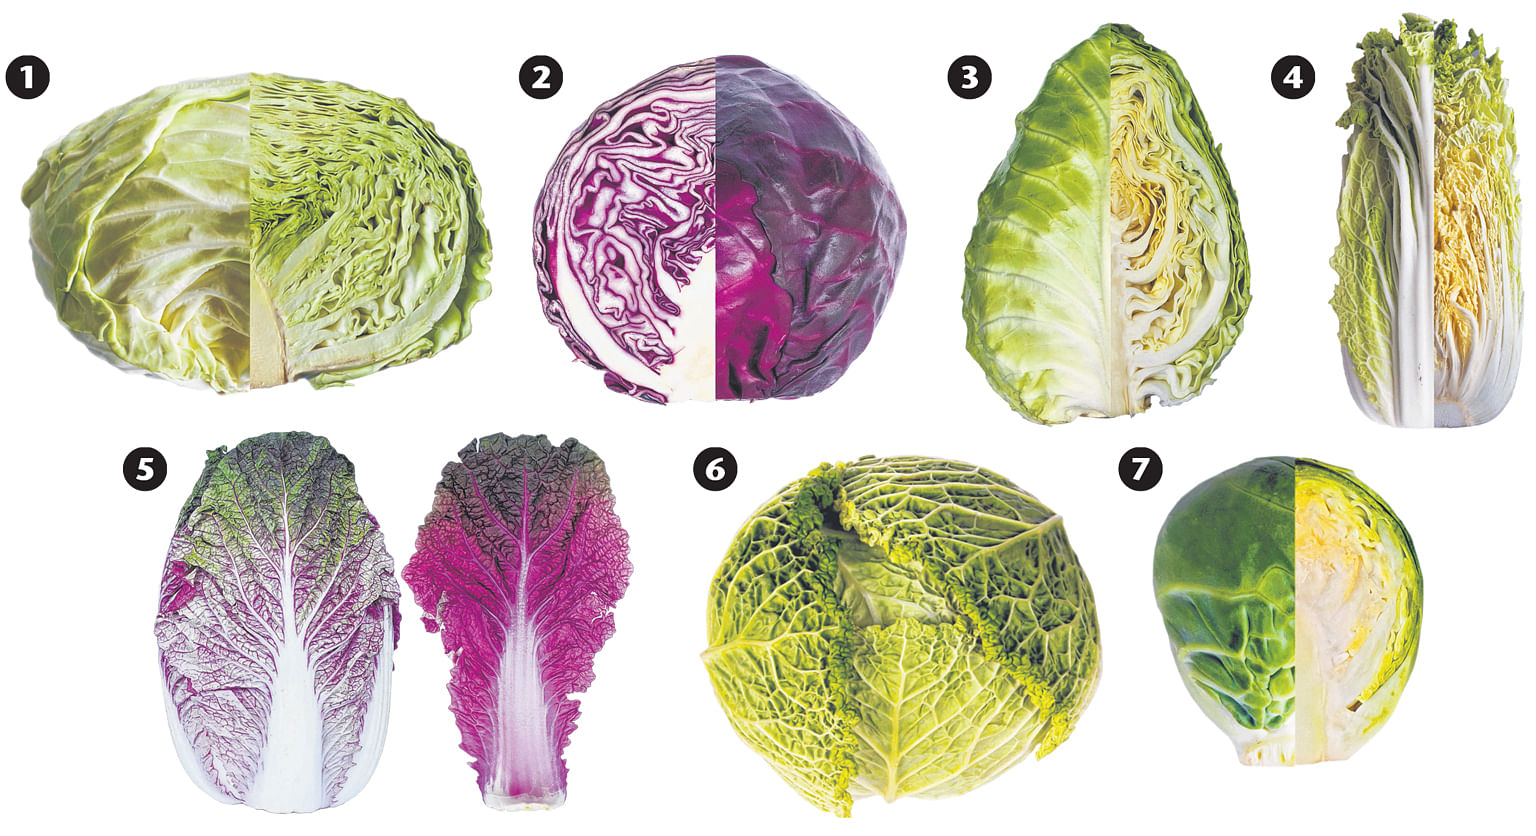 Cabbages Food News Top Stories The Straits Times